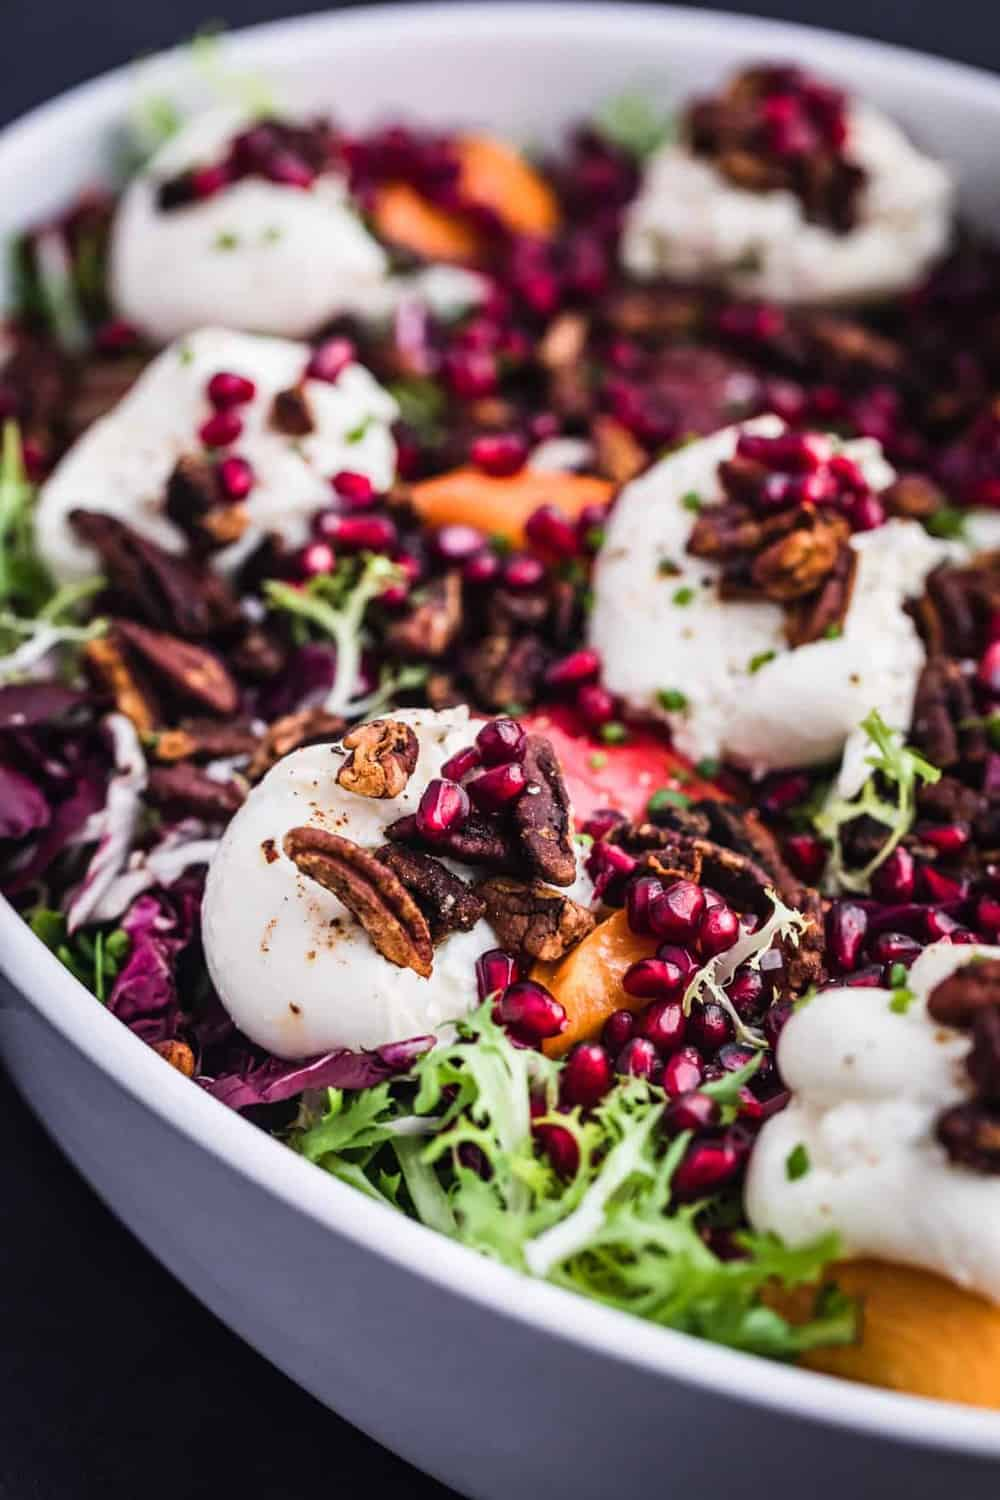 Burrata on top of frisee and radicchio with pears, persimmons, pomegranate and pecans scattered on top a serving plate.